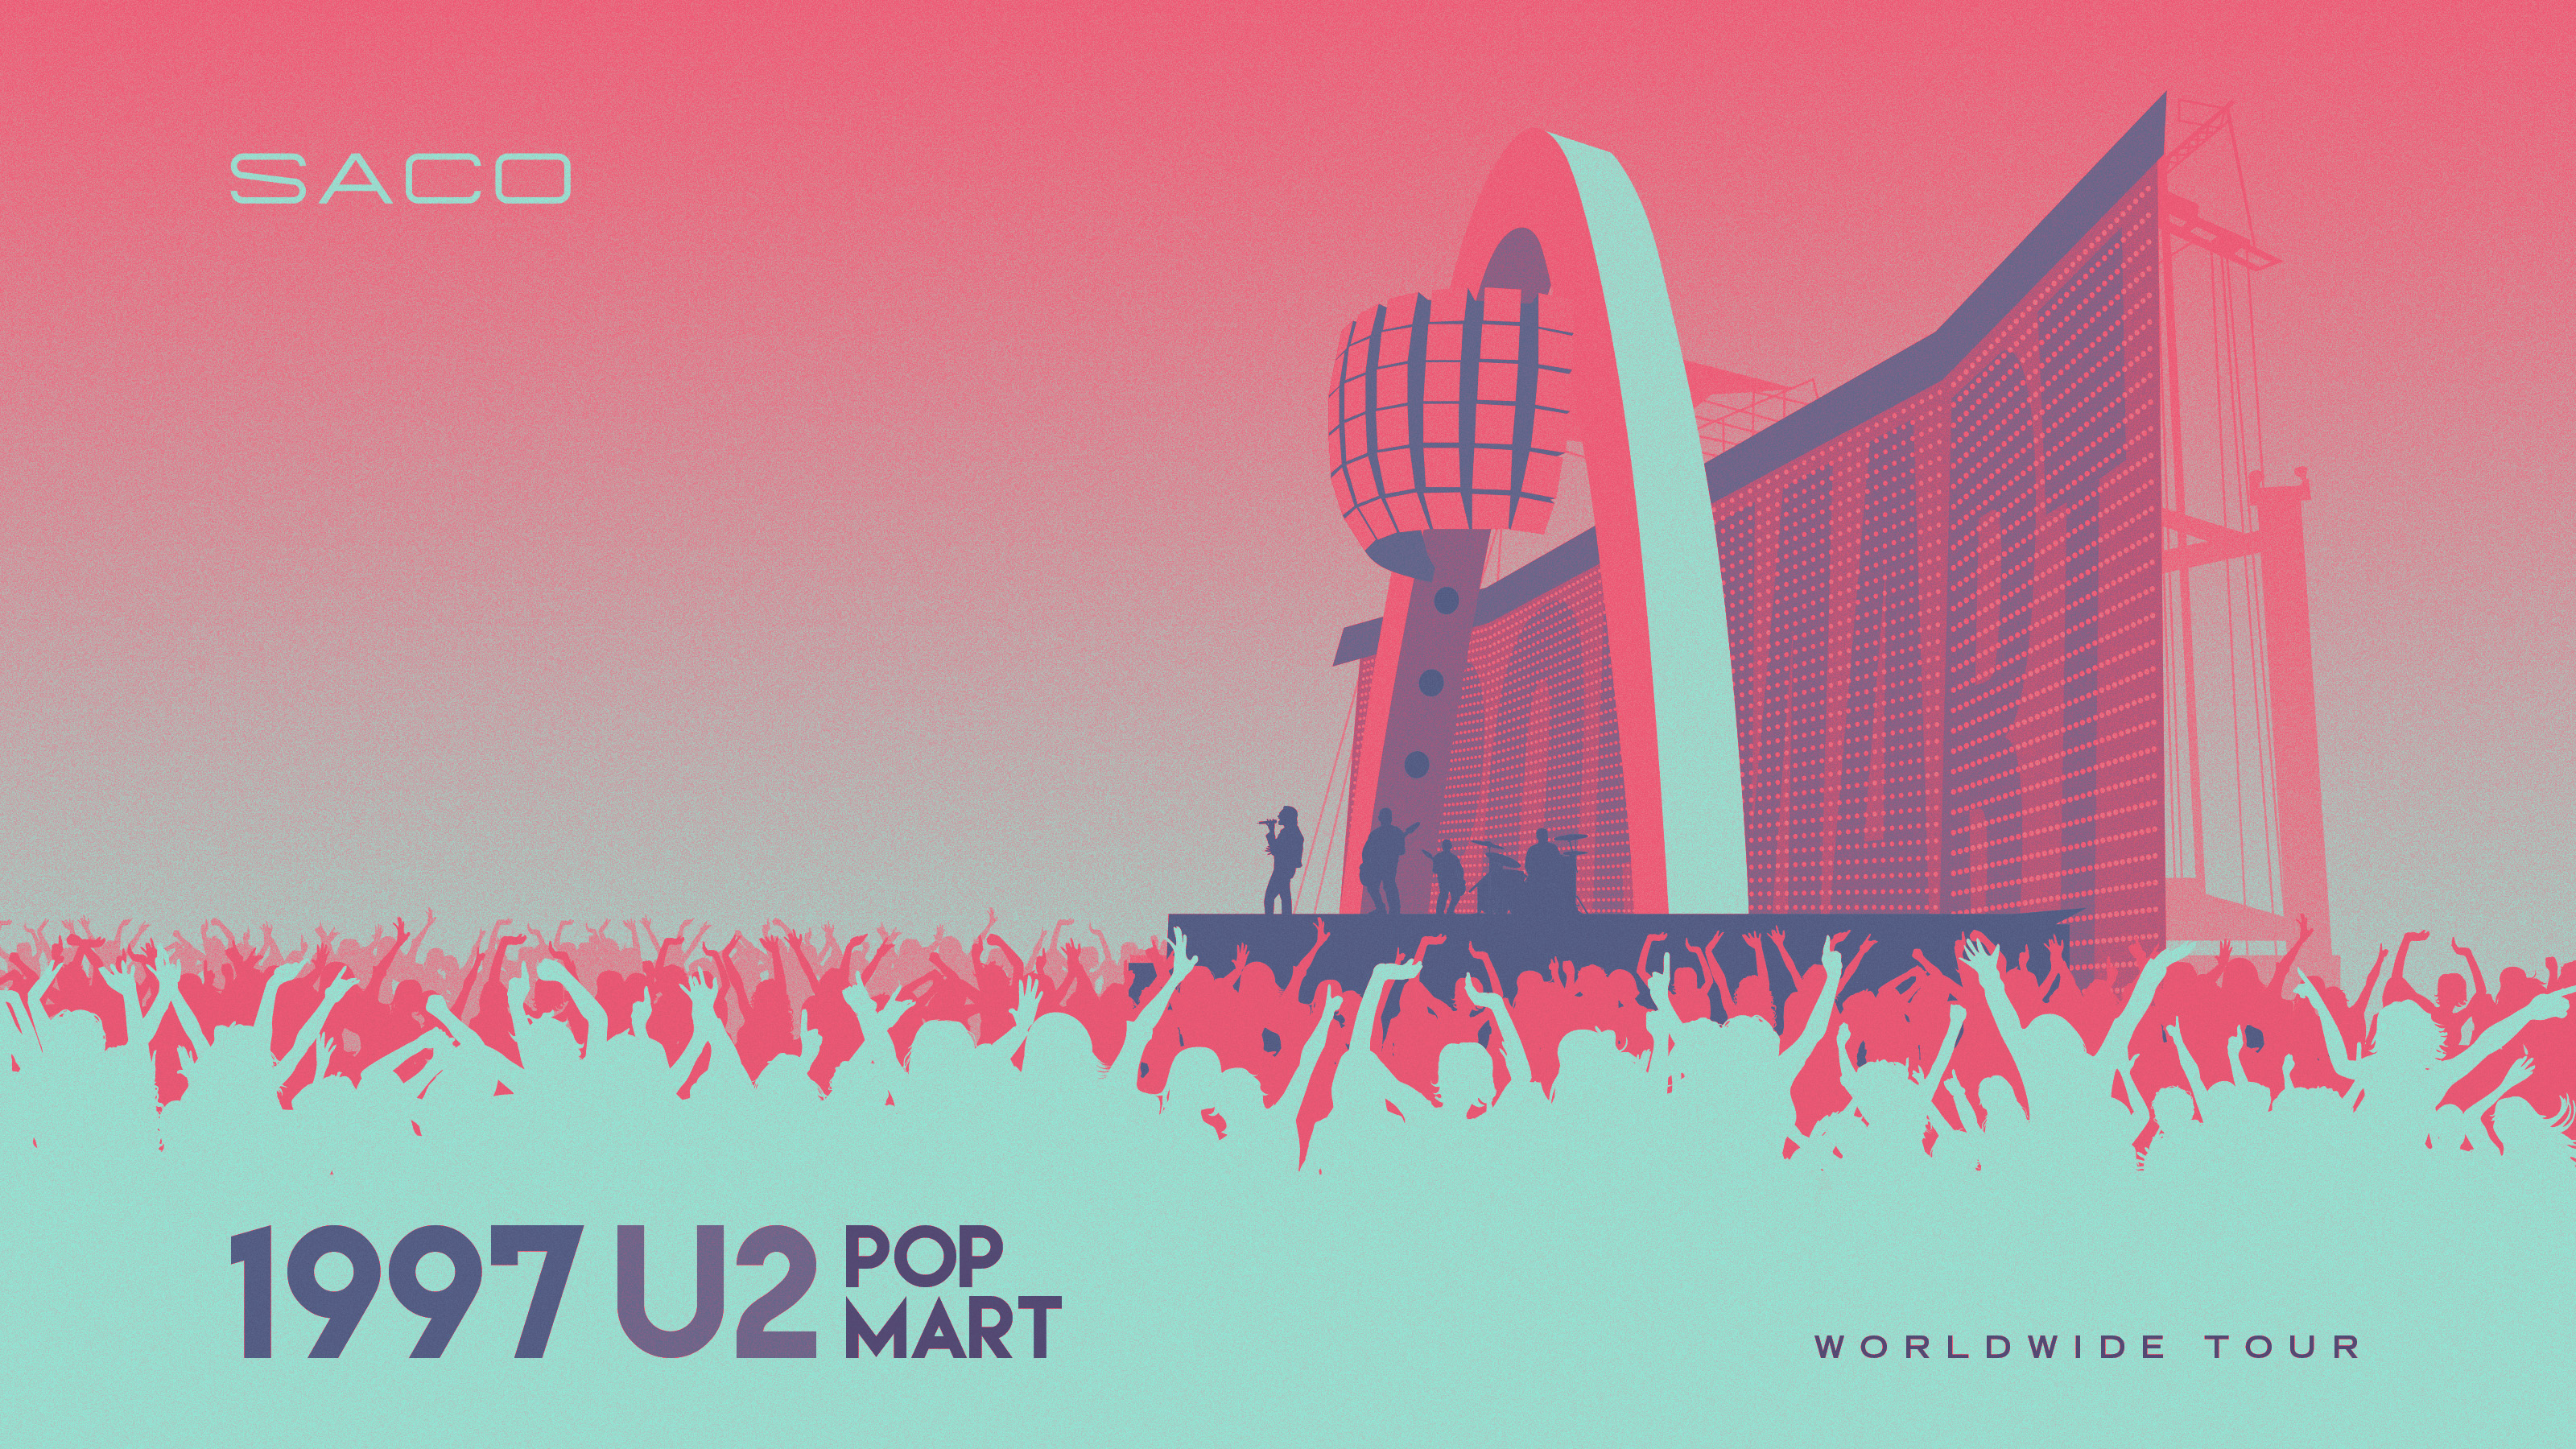 U2 POPMART TOUR WALLPAPER